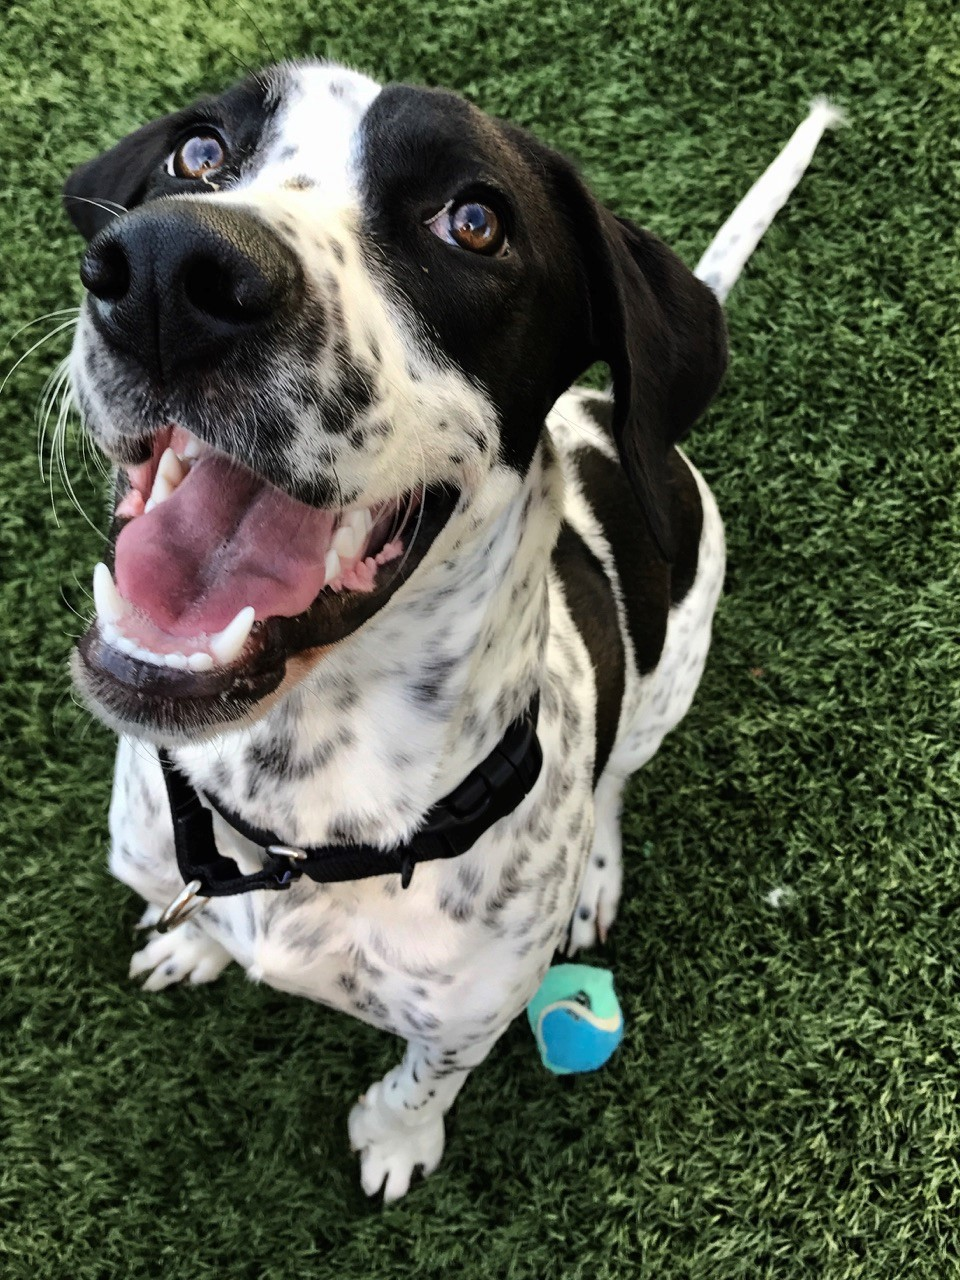 """<div class=""""meta image-caption""""><div class=""""origin-logo origin-image none""""><span>none</span></div><span class=""""caption-text"""">Scout is almost 3. She's a hound mix who was voted """"class clown"""" by her peers. A fan of toys, Scout prefers tennis balls. (WTVD photo/Julie Wilson)</span></div>"""